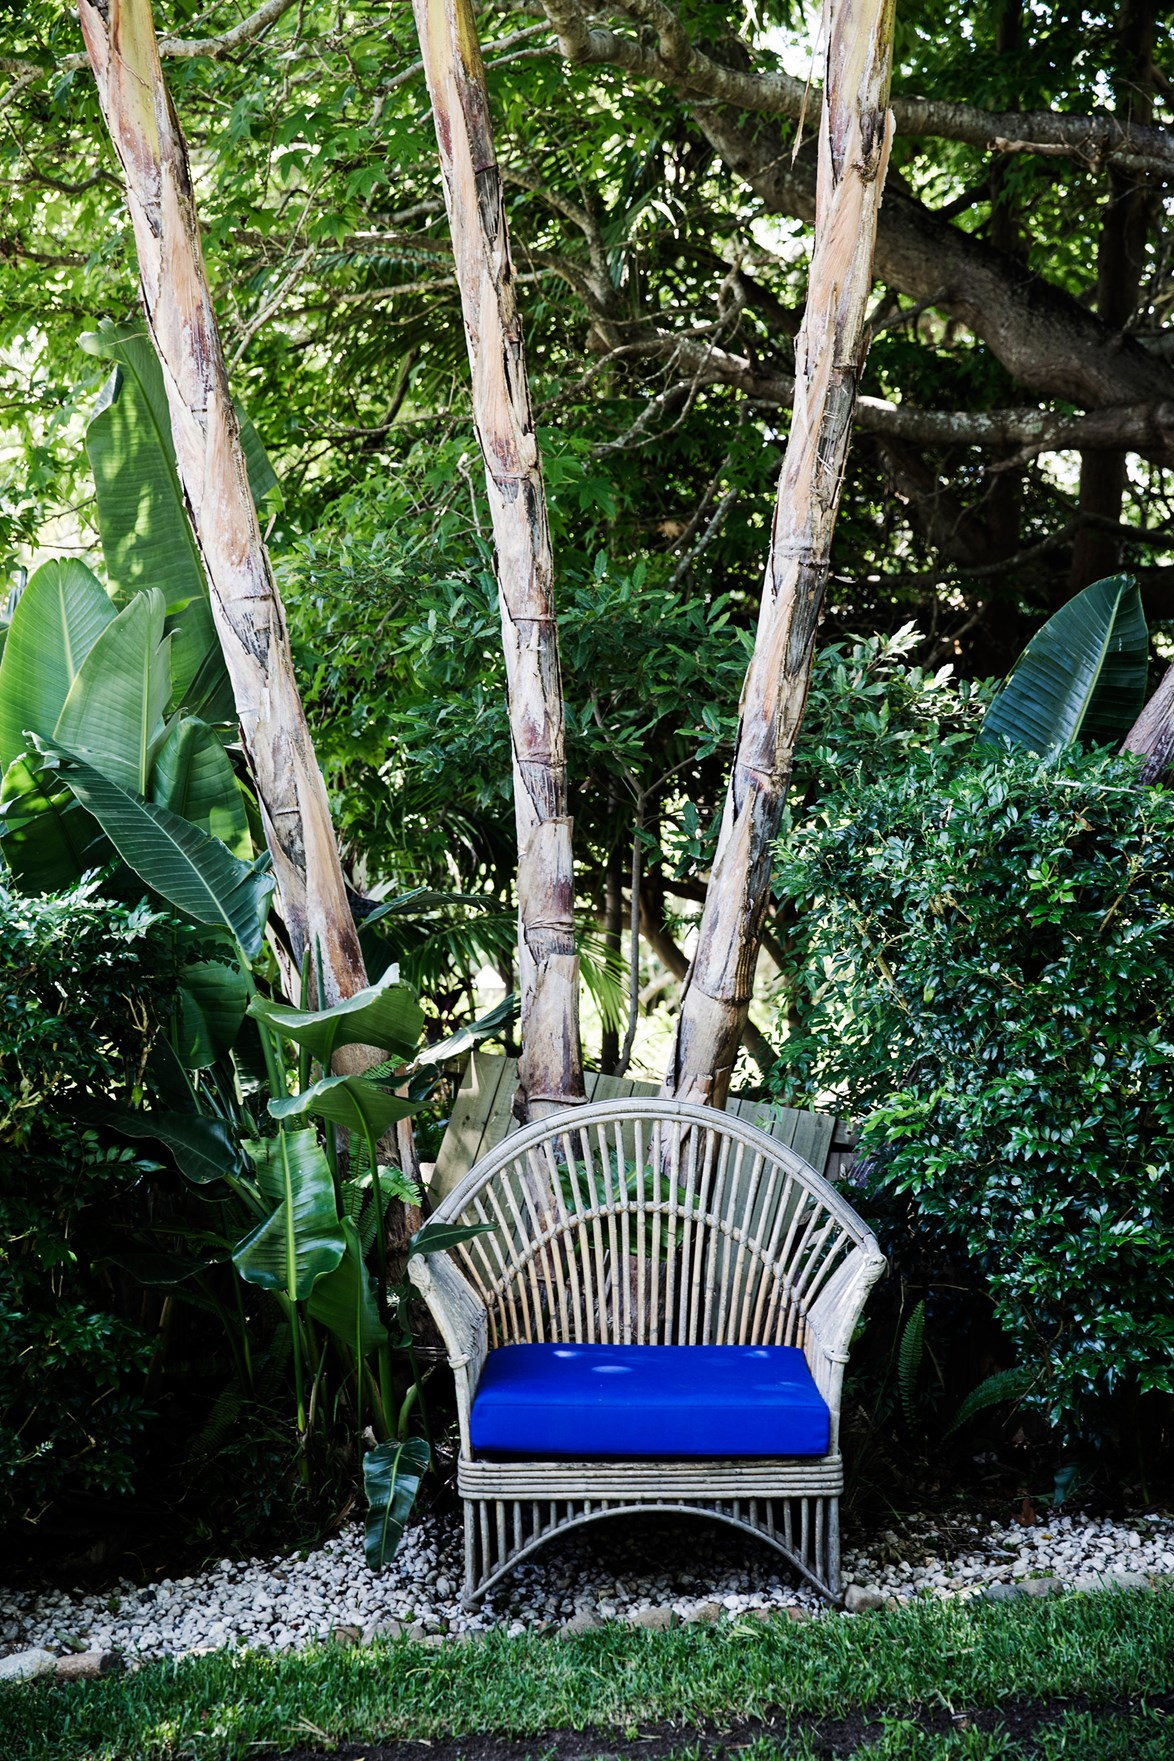 Creating an outdoor escape doesn't always have to cost a fortune. Take this second-hand wicker chair. Upcycled with an upholstered blue cushion, it's fit for a [rustic beachside garden](http://www.homestolove.com.au/a-rustic-beachside-garden-4381) on Sydney's Northern Beaches. *homes+*